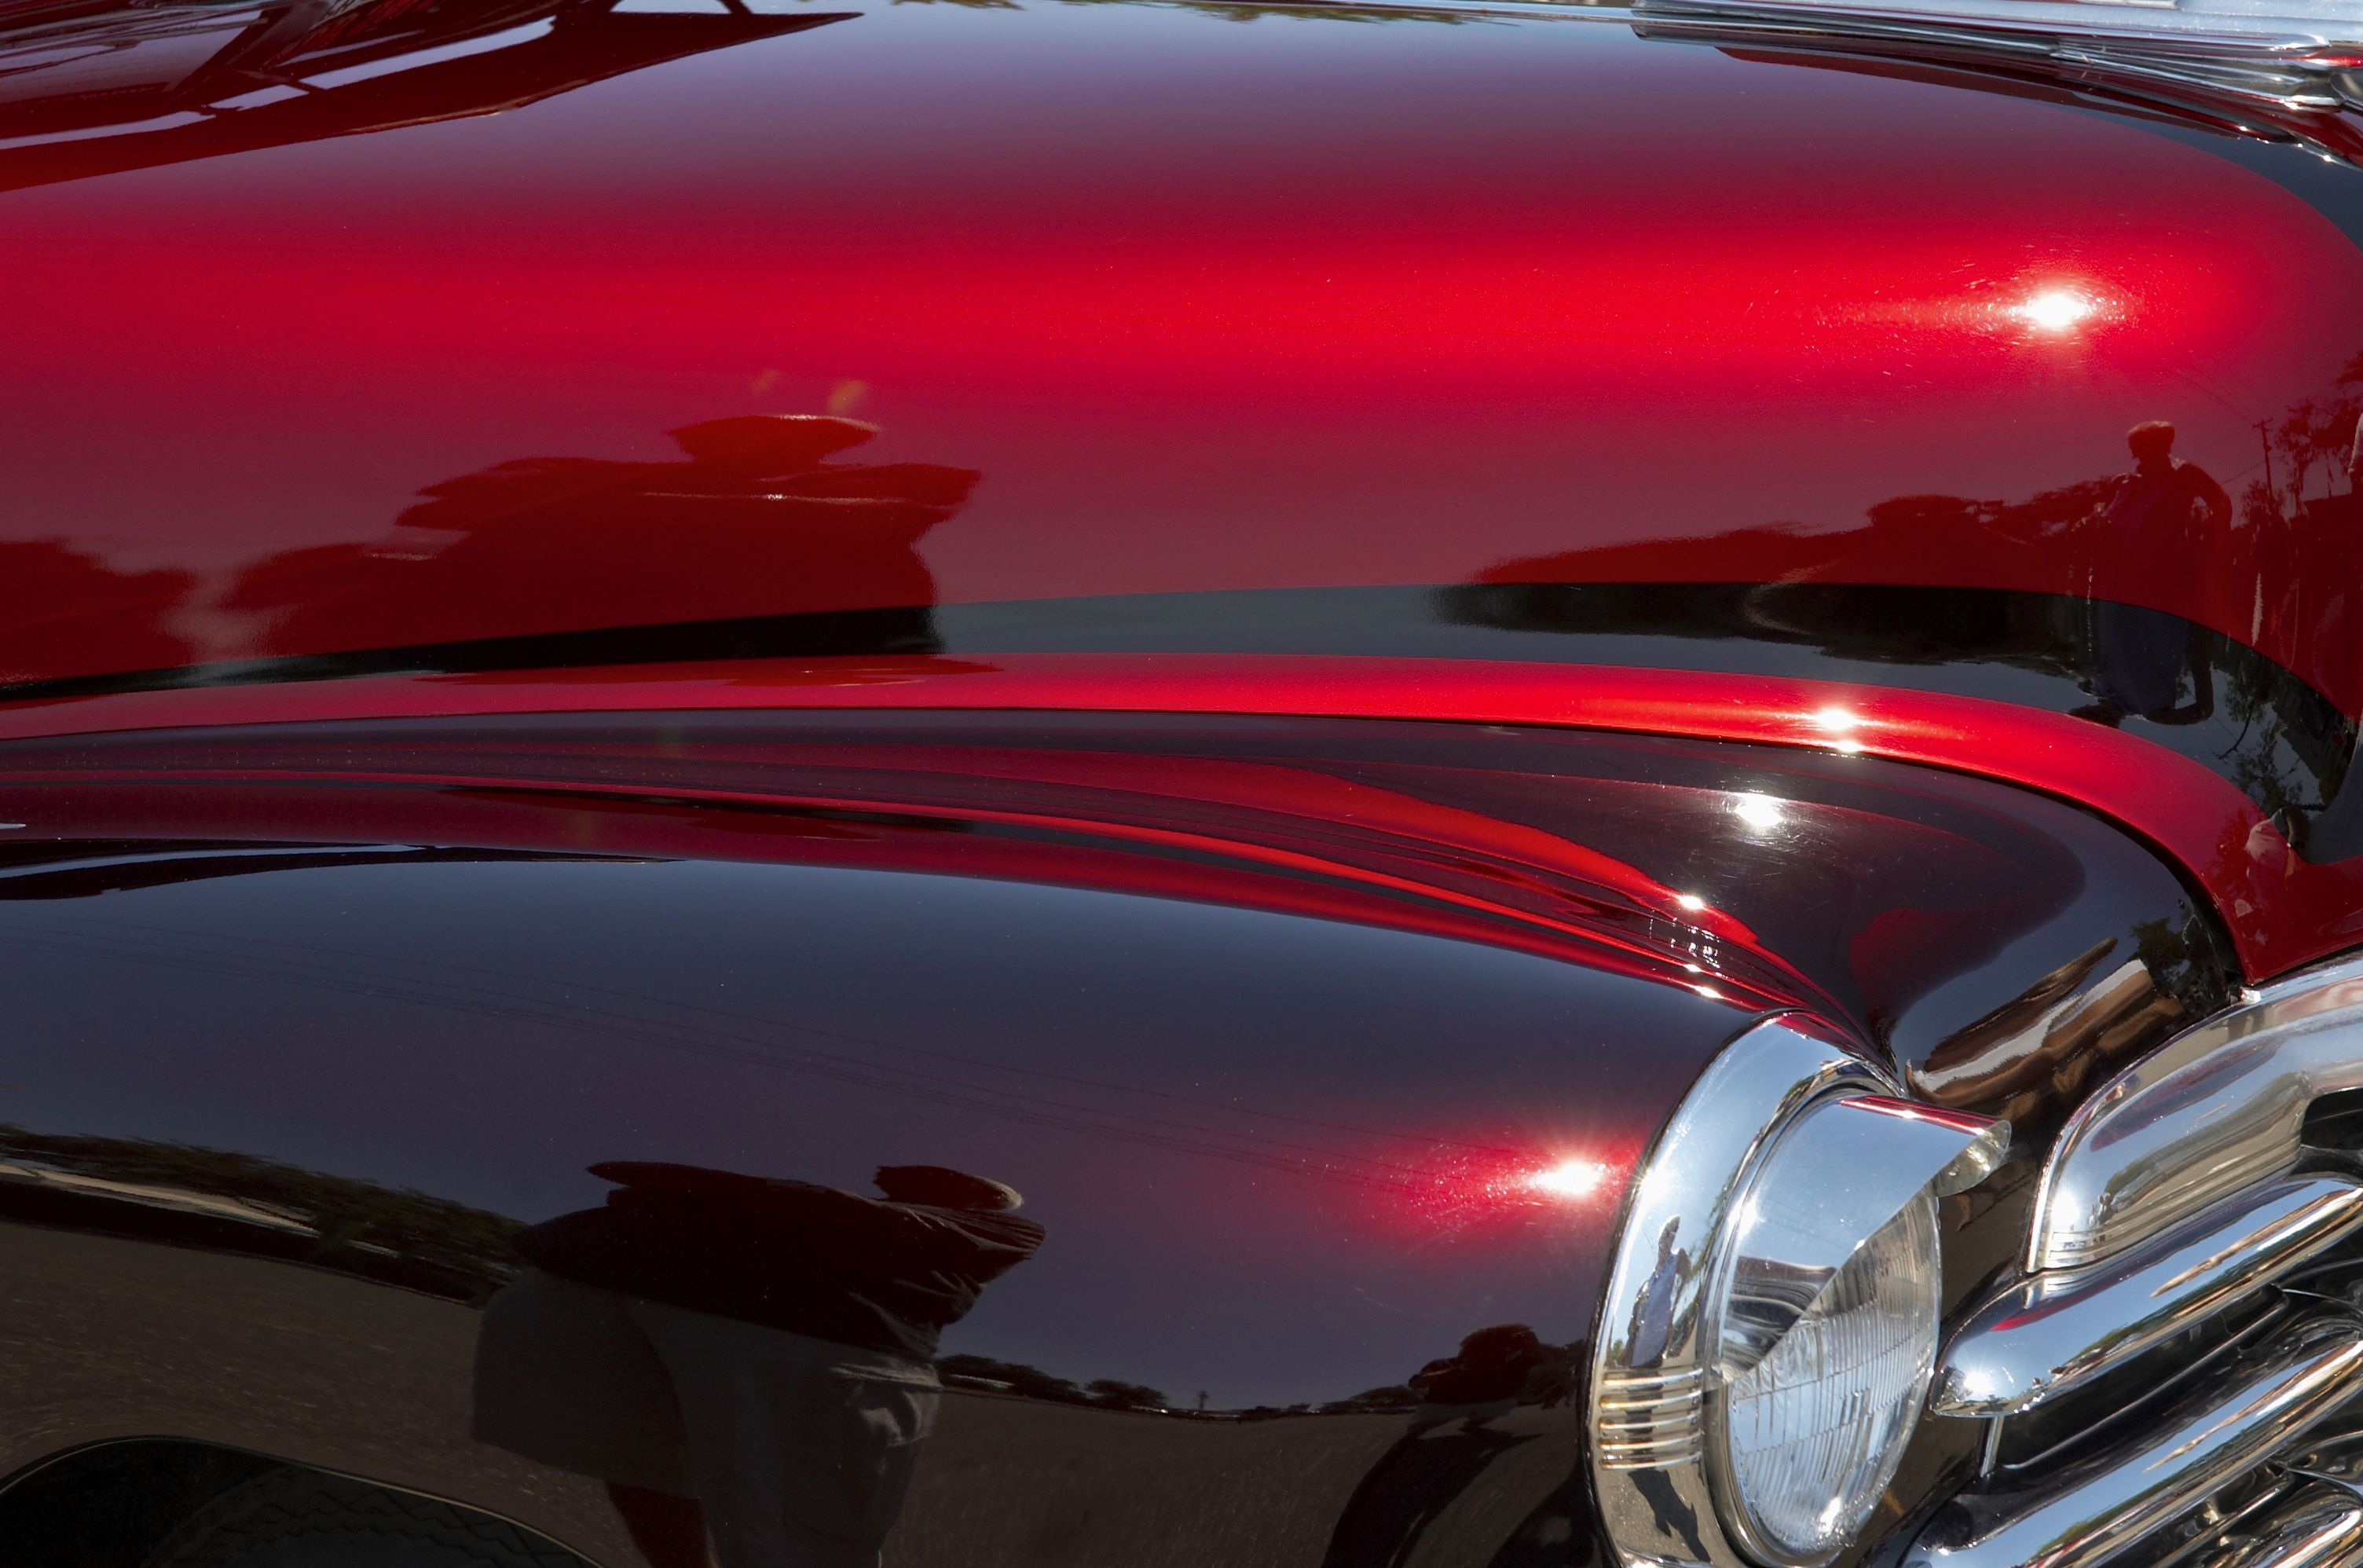 Image Result For Paint Car Resto In Works Car Paint Colors Custom Cars Paint Car Paint Jobs Car Paint Colors